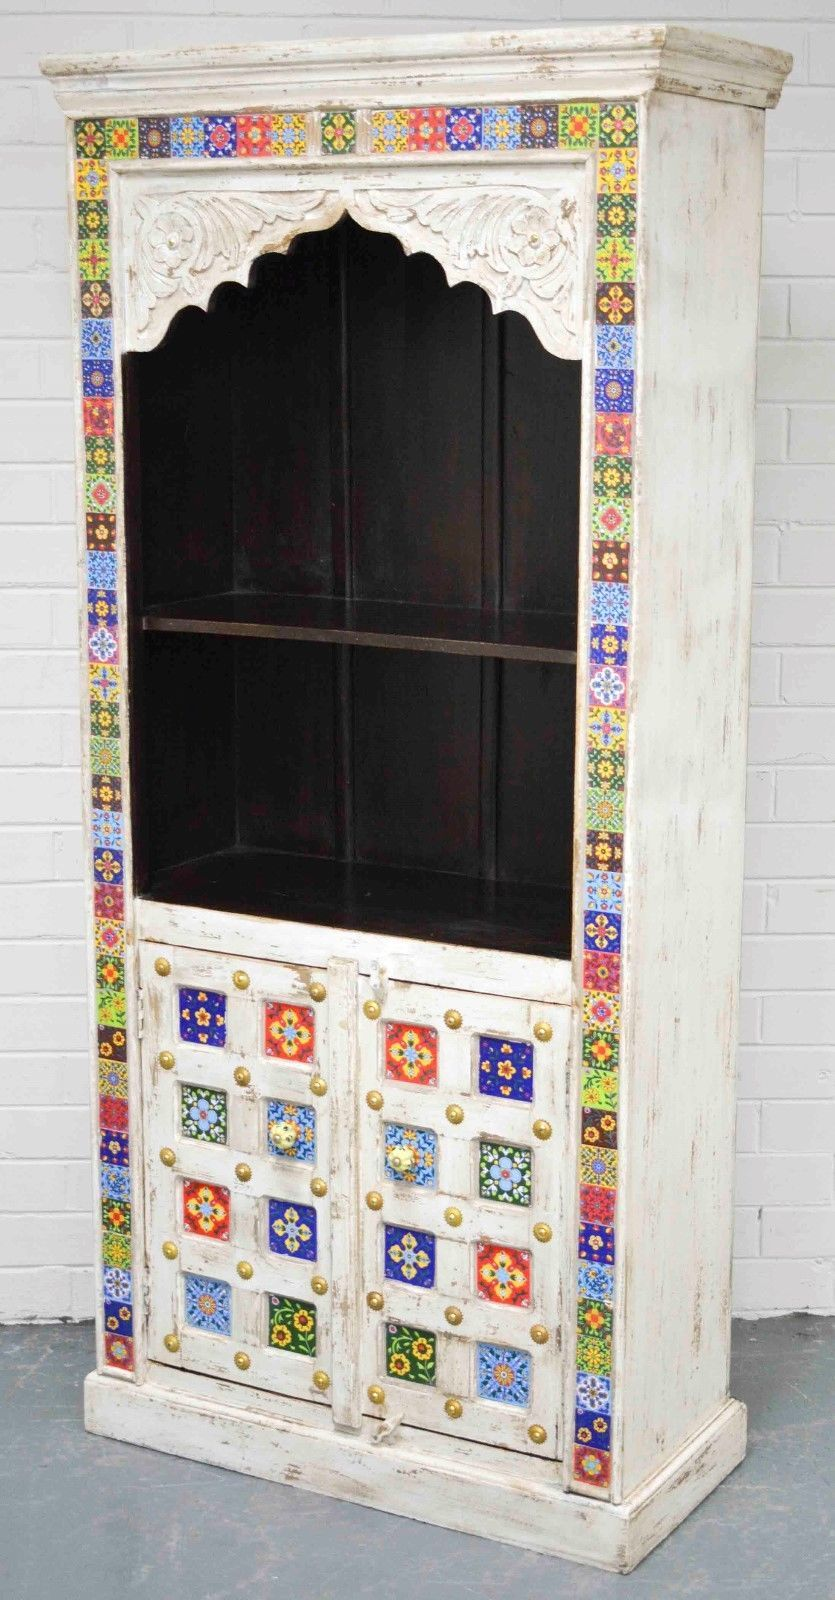 East Connection Moroccan Ceramic Tile Shabby Chic Carved Bookshelf Display Cabinet Size 78 CM Wide 180 High 36 Deep Also Features Door On The Lower